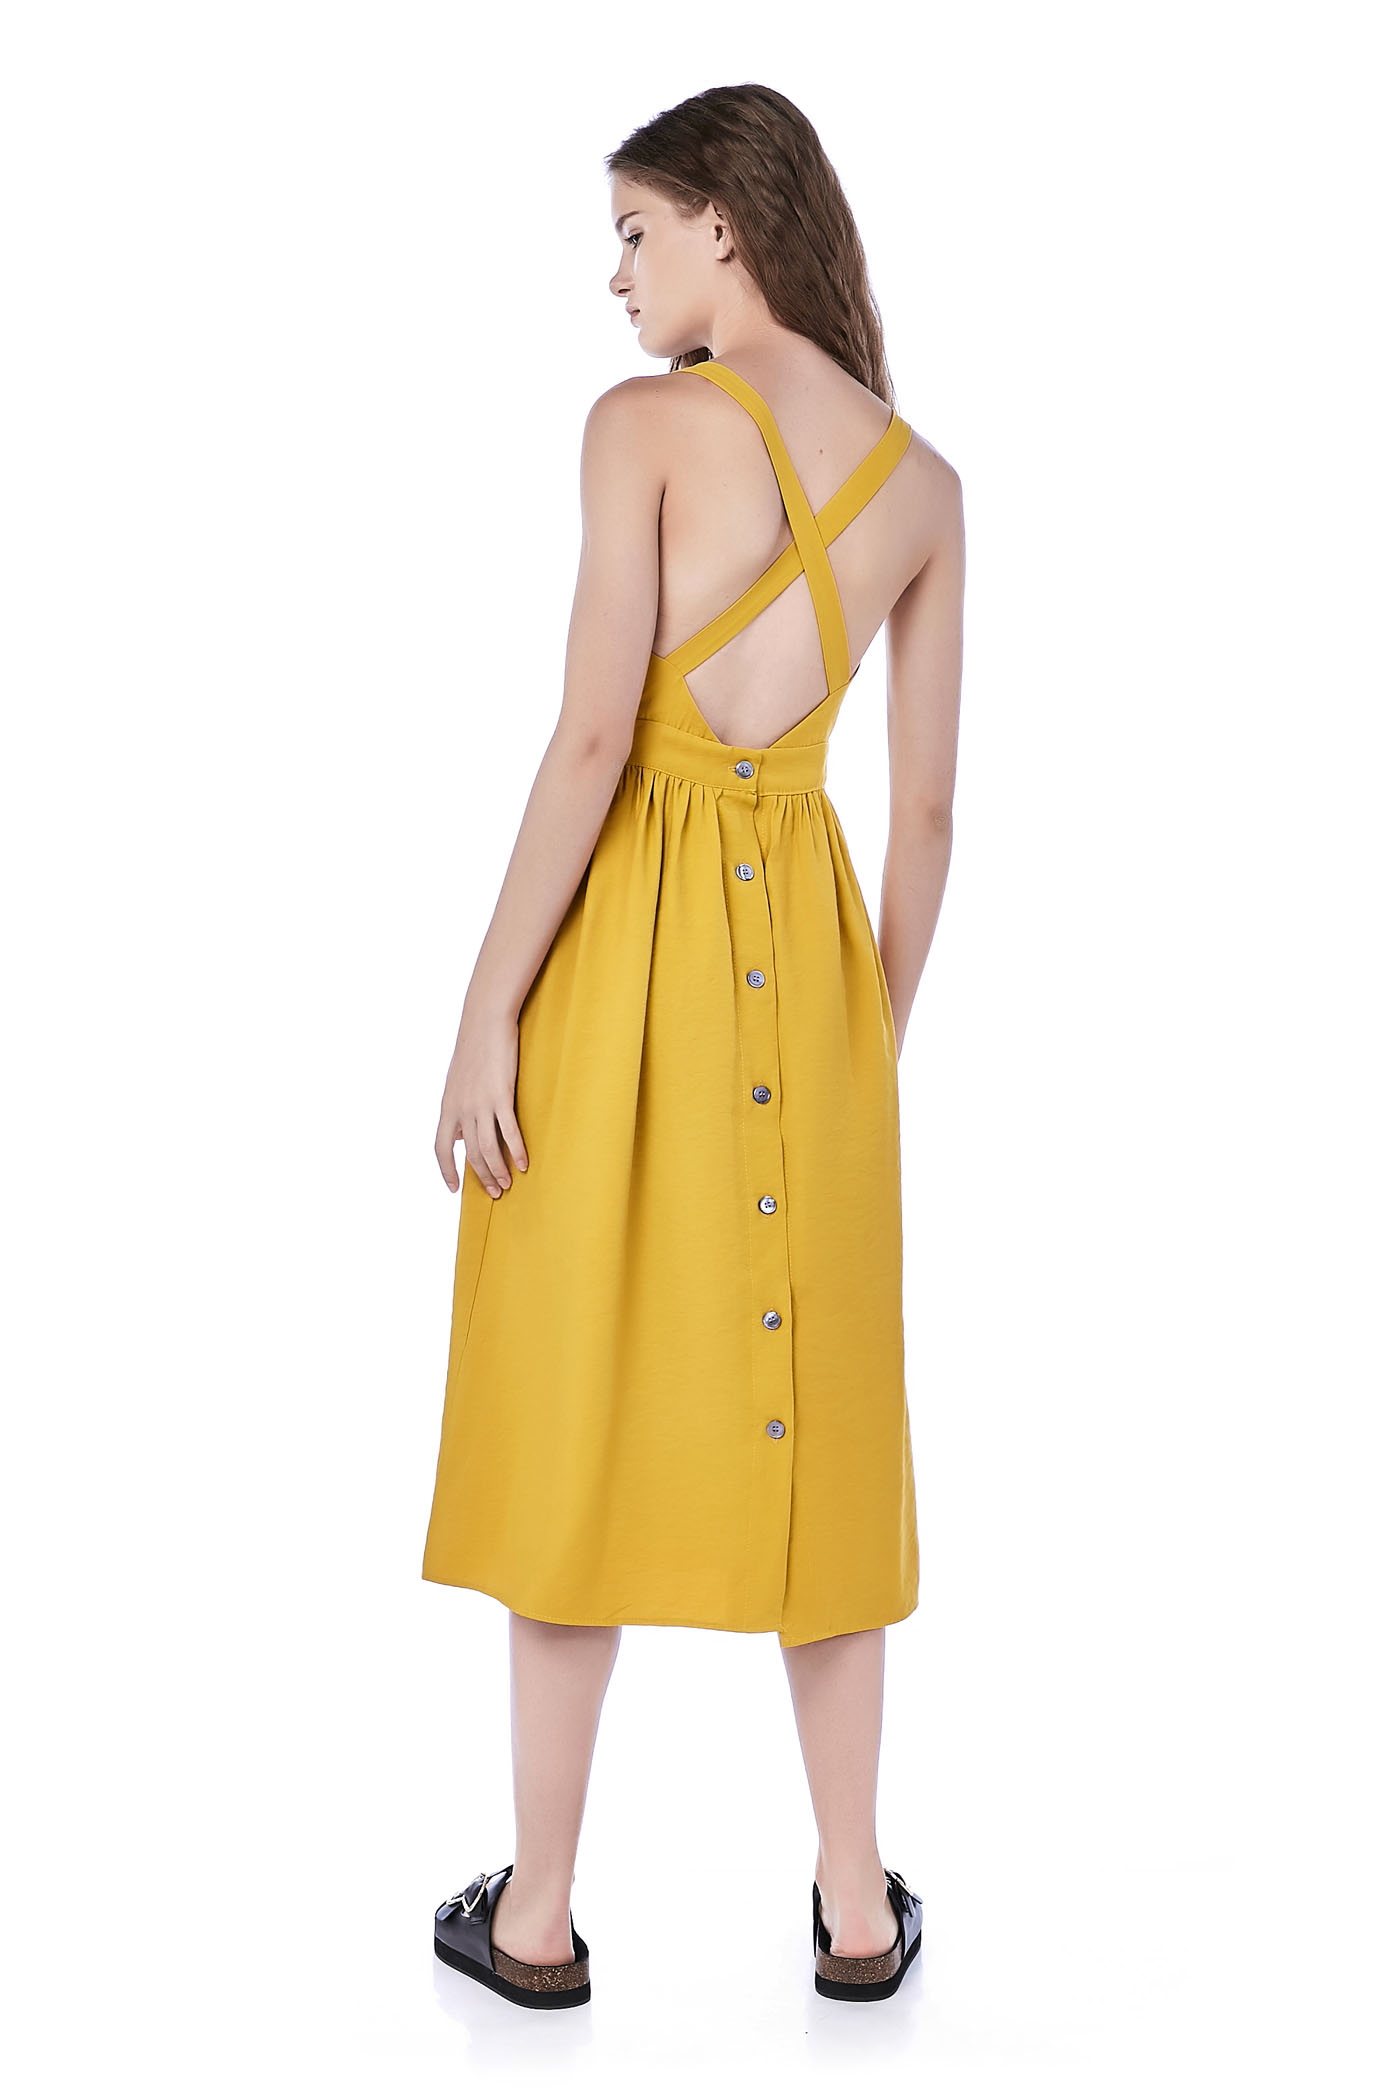 Kyndall Cross-Back Midi Dress